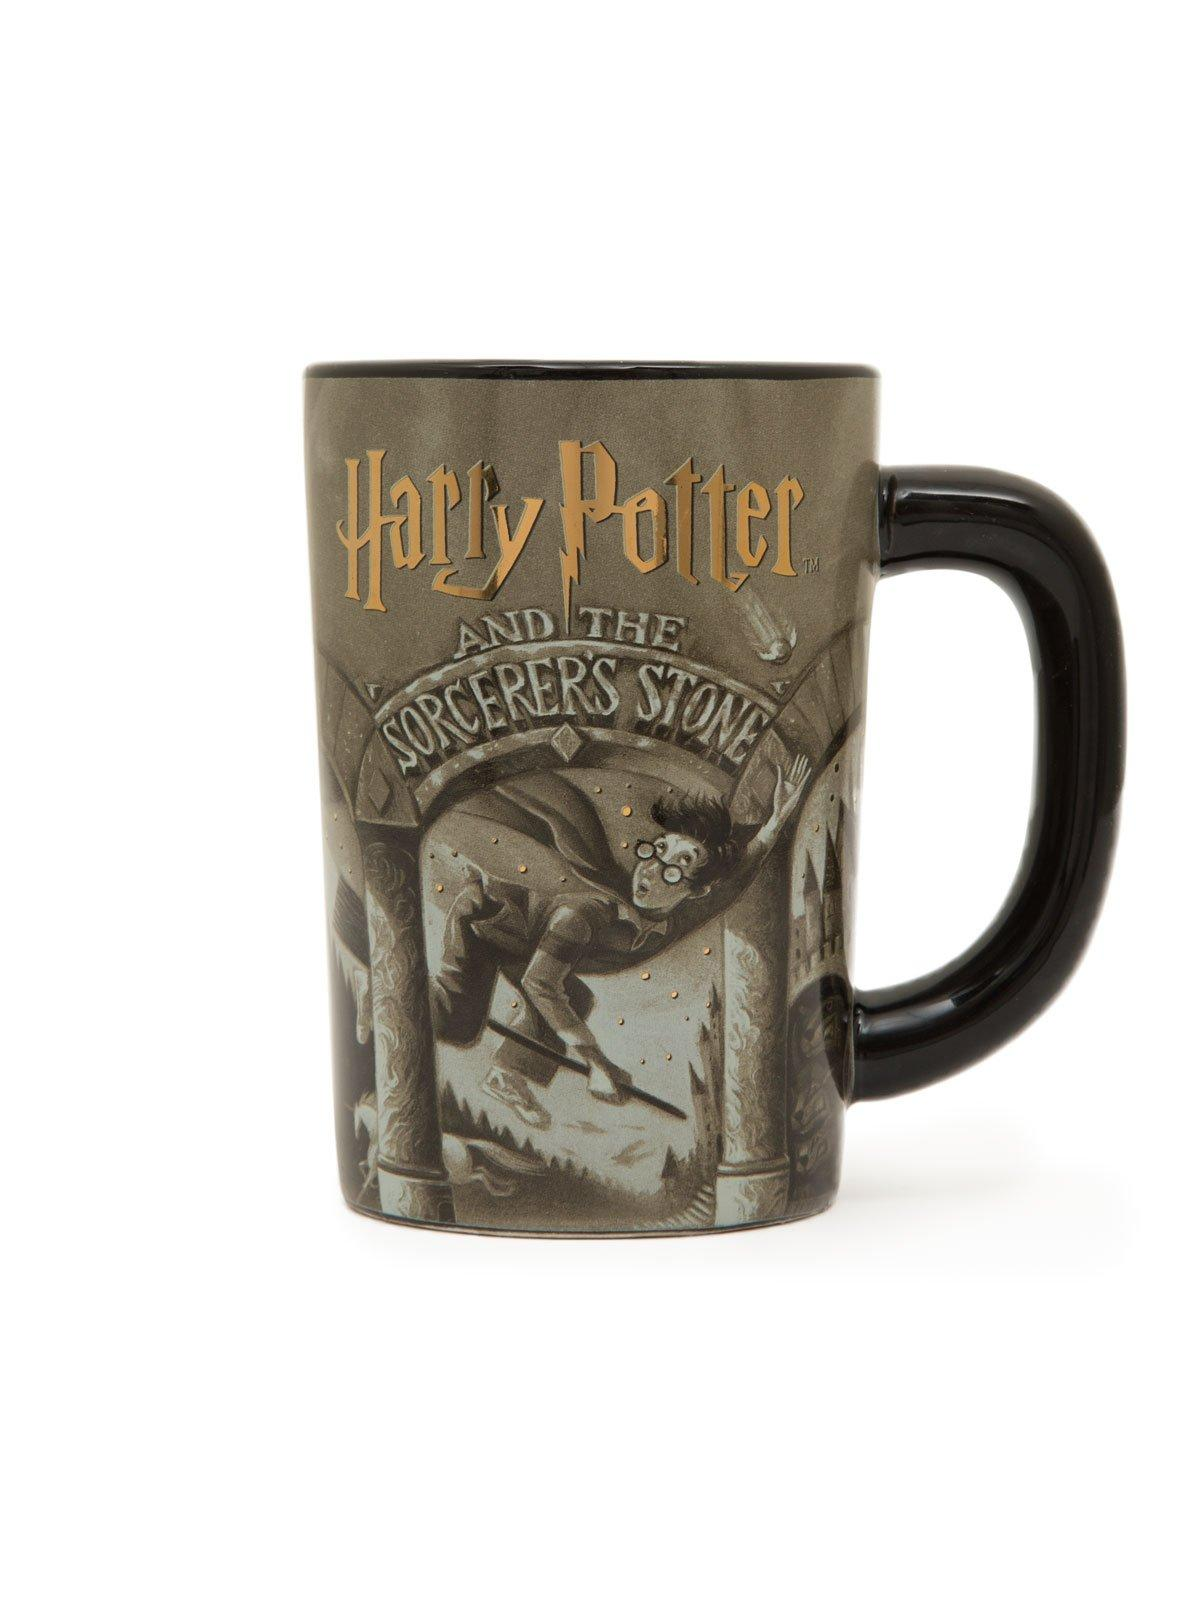 A ceramic coffee mug featuring the cover art (by Mary GrandPre) of Harry Potter and the Sorcerer's Stone by J. K. Rowling